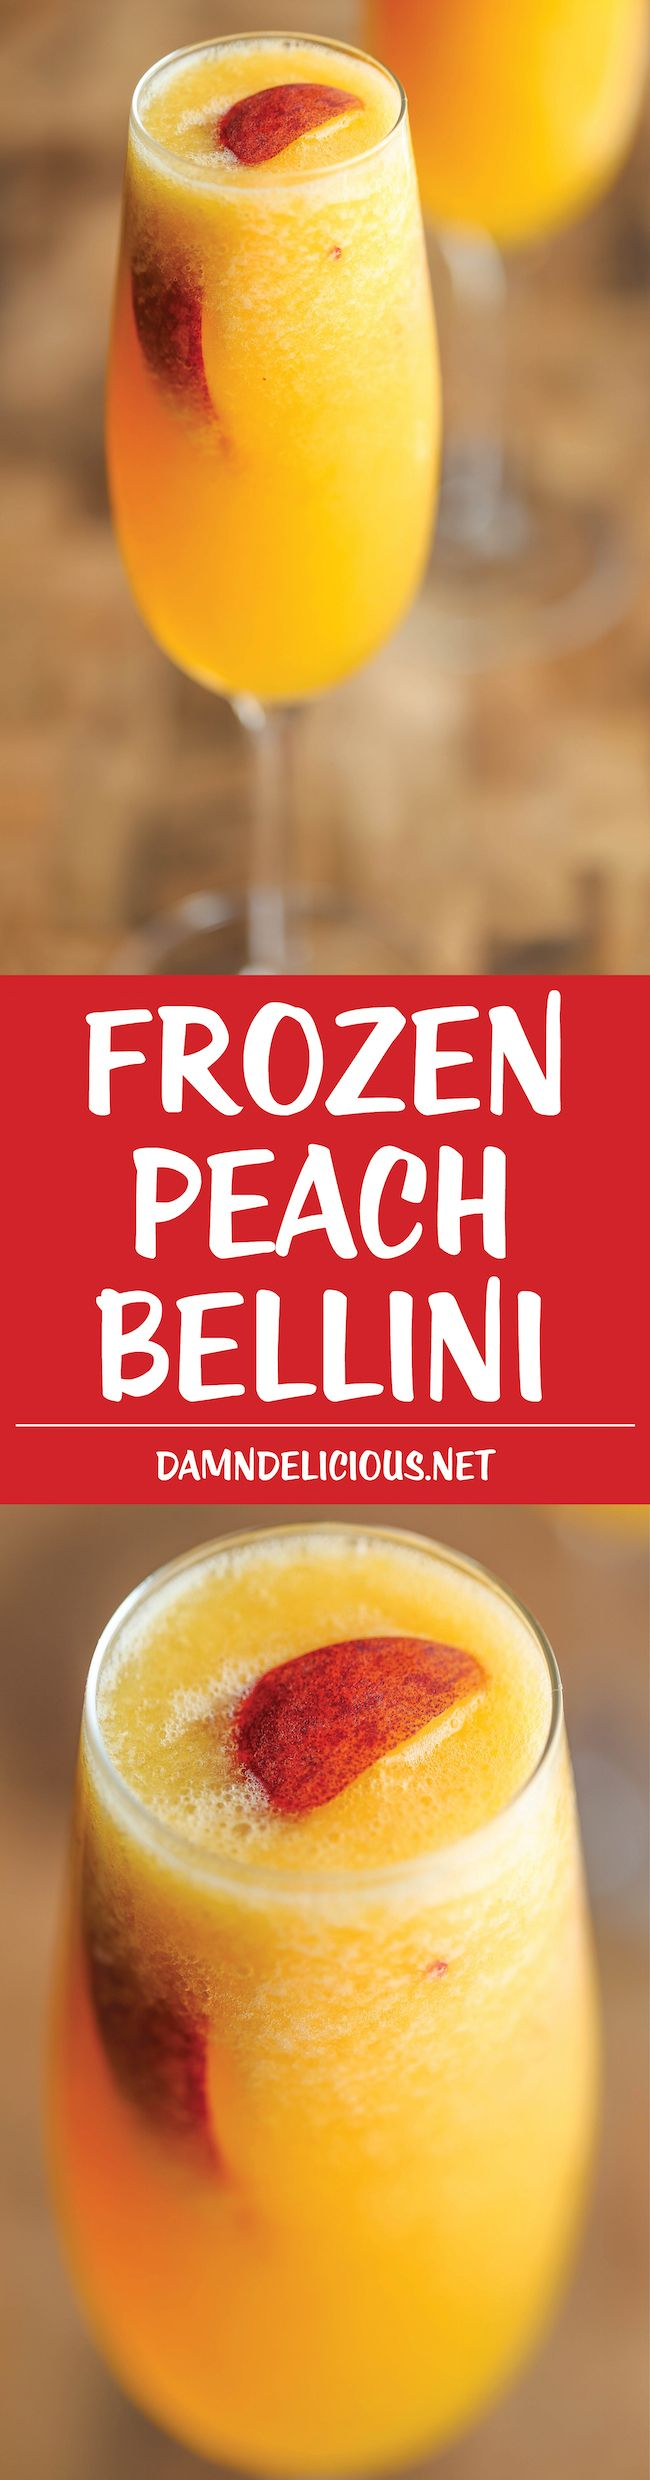 Frozen Peach Bellini - Wonderfully light, refreshing & bubbly. All you need is 3 ingredients and 5 minutes! 3 cups frozen peach slices, 1 cup mango nectar 1 (750-mL) bottle Prosecco, chilled